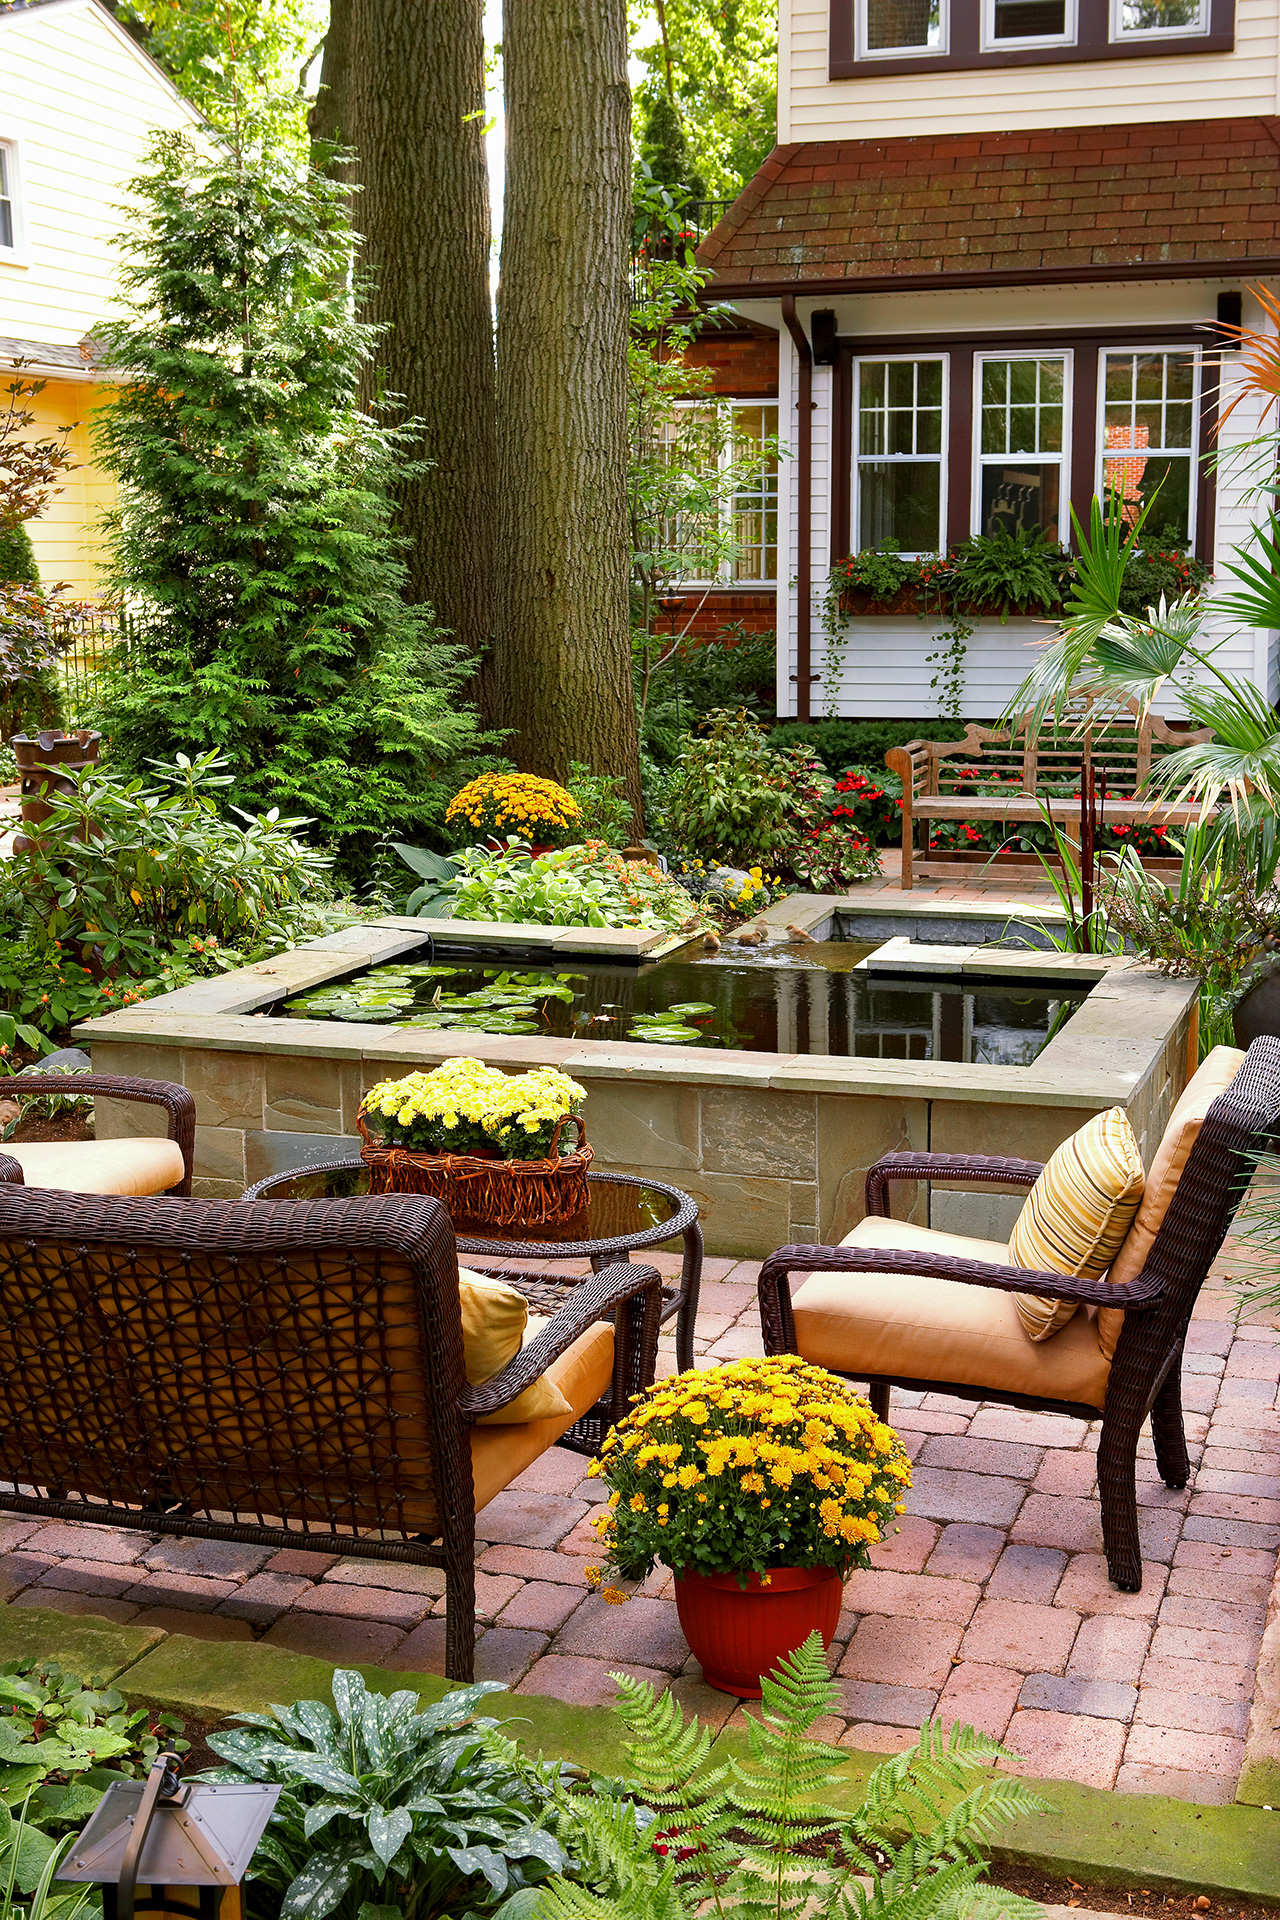 20 Landscaping Ideas To Perk Up Your Backyard pertaining to Backyard Landscaping Pictures